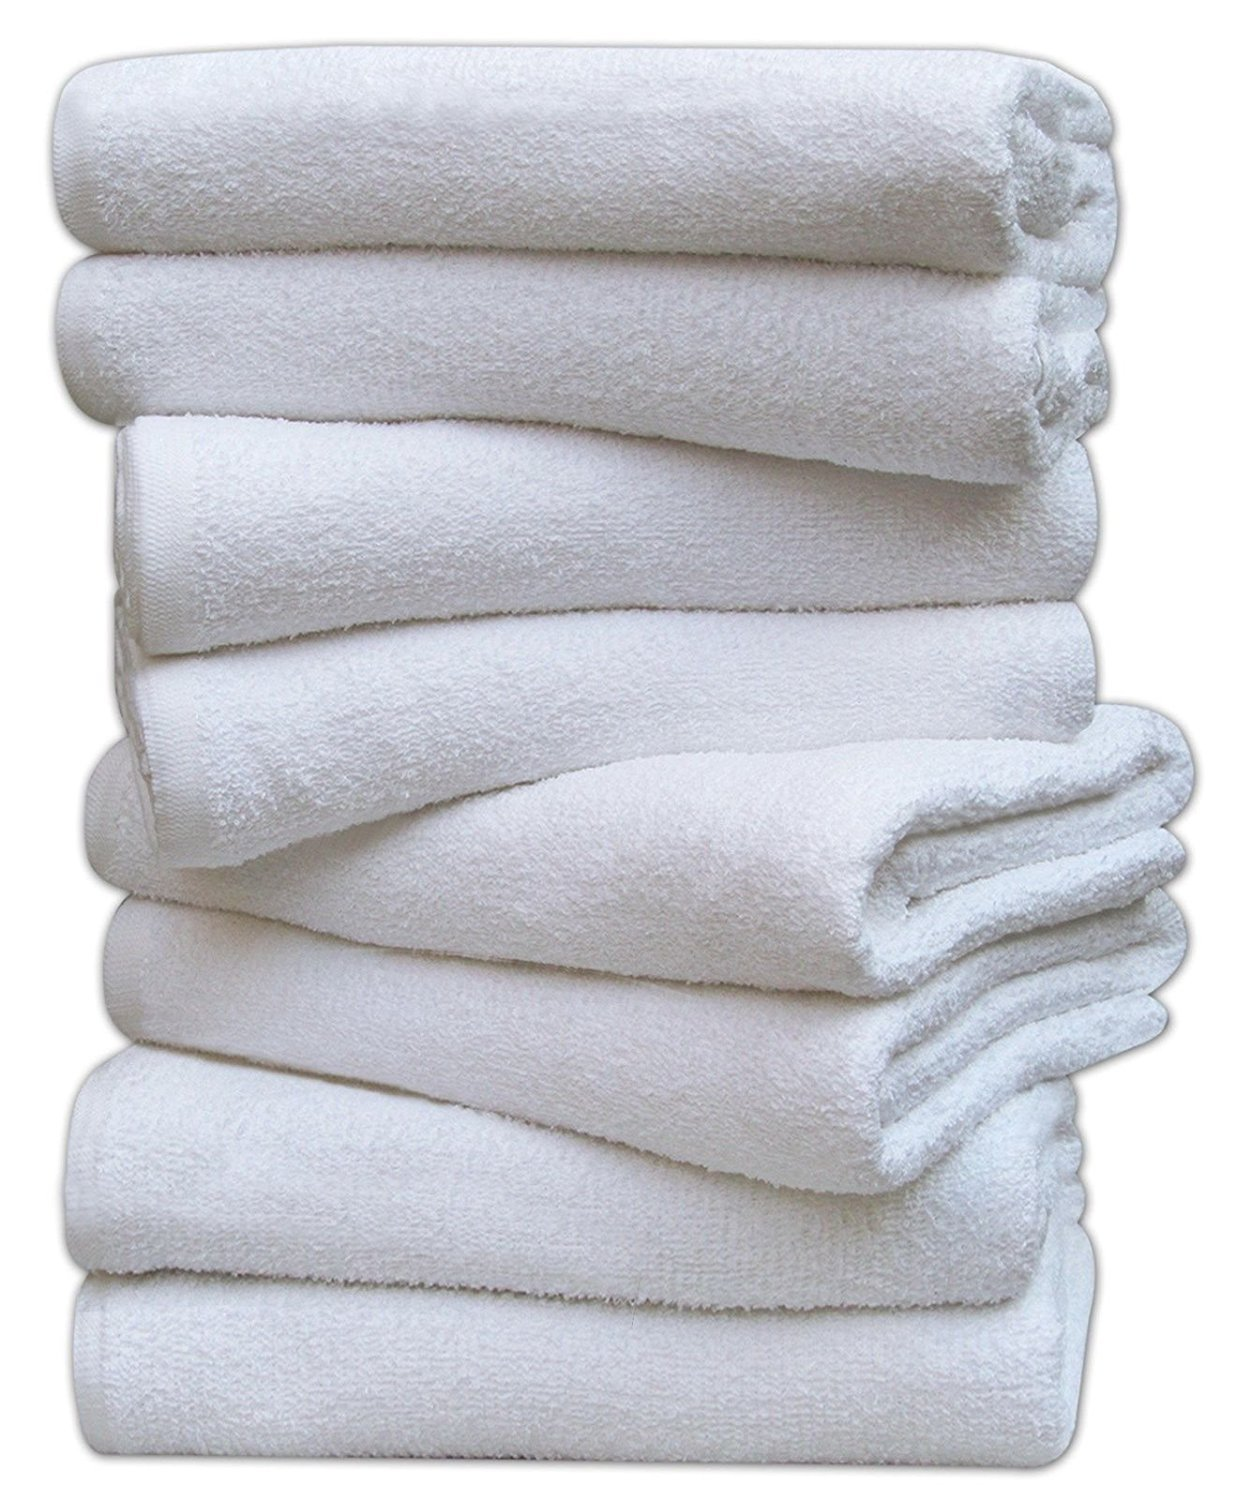 Pack of 6 DARLING Premium Quality Soft Baby Terry Towelling Nappies 100/% Cotton 60x60xm